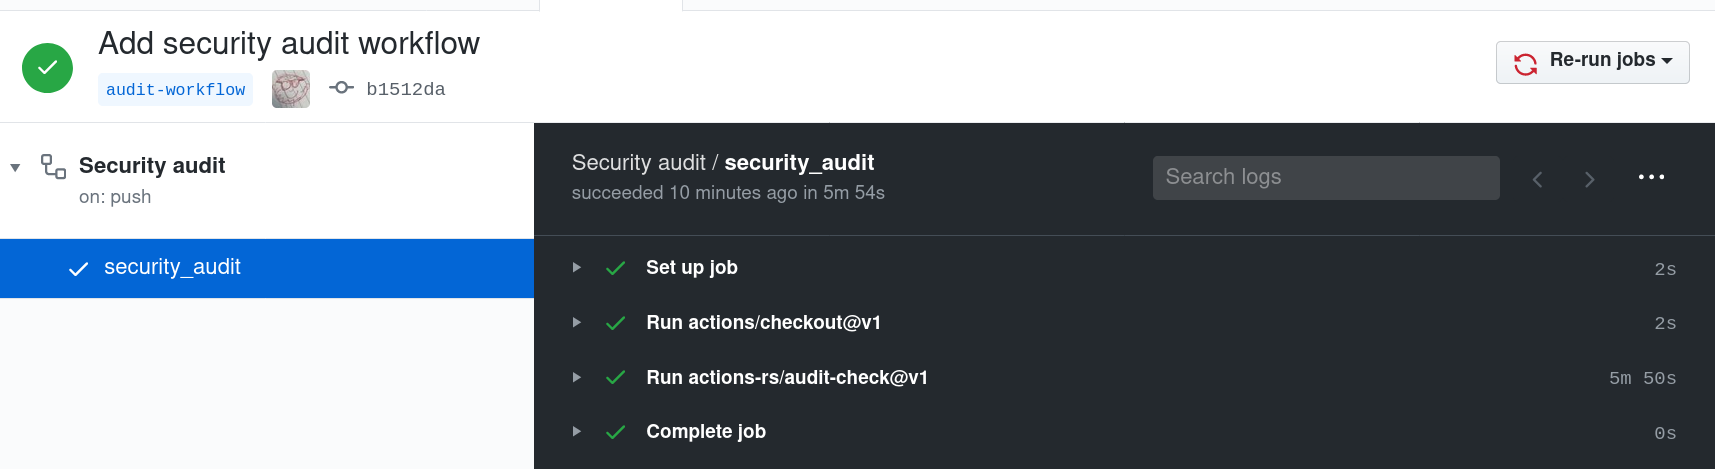 Overview of actions when we add the security audit workflow.